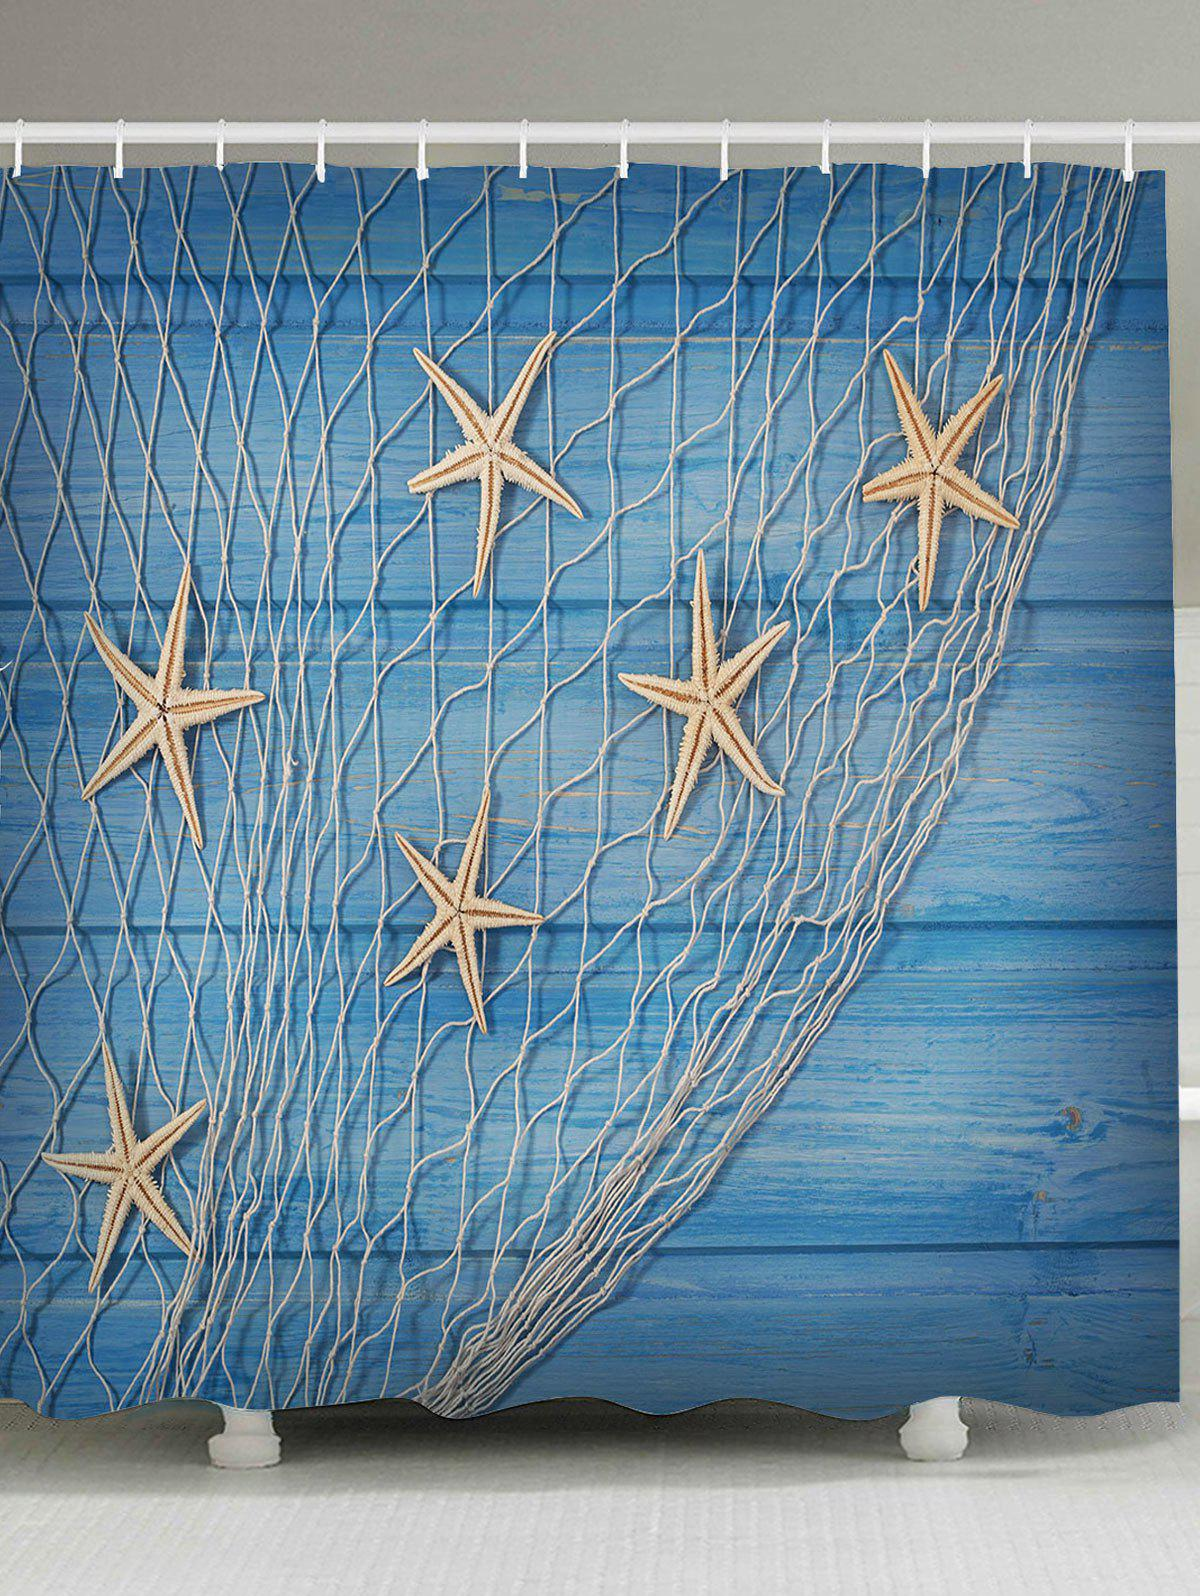 Starfish Fishing Net Wood Grain Nautical Shower Curtain starfish fishing net wood grain nautical shower curtain